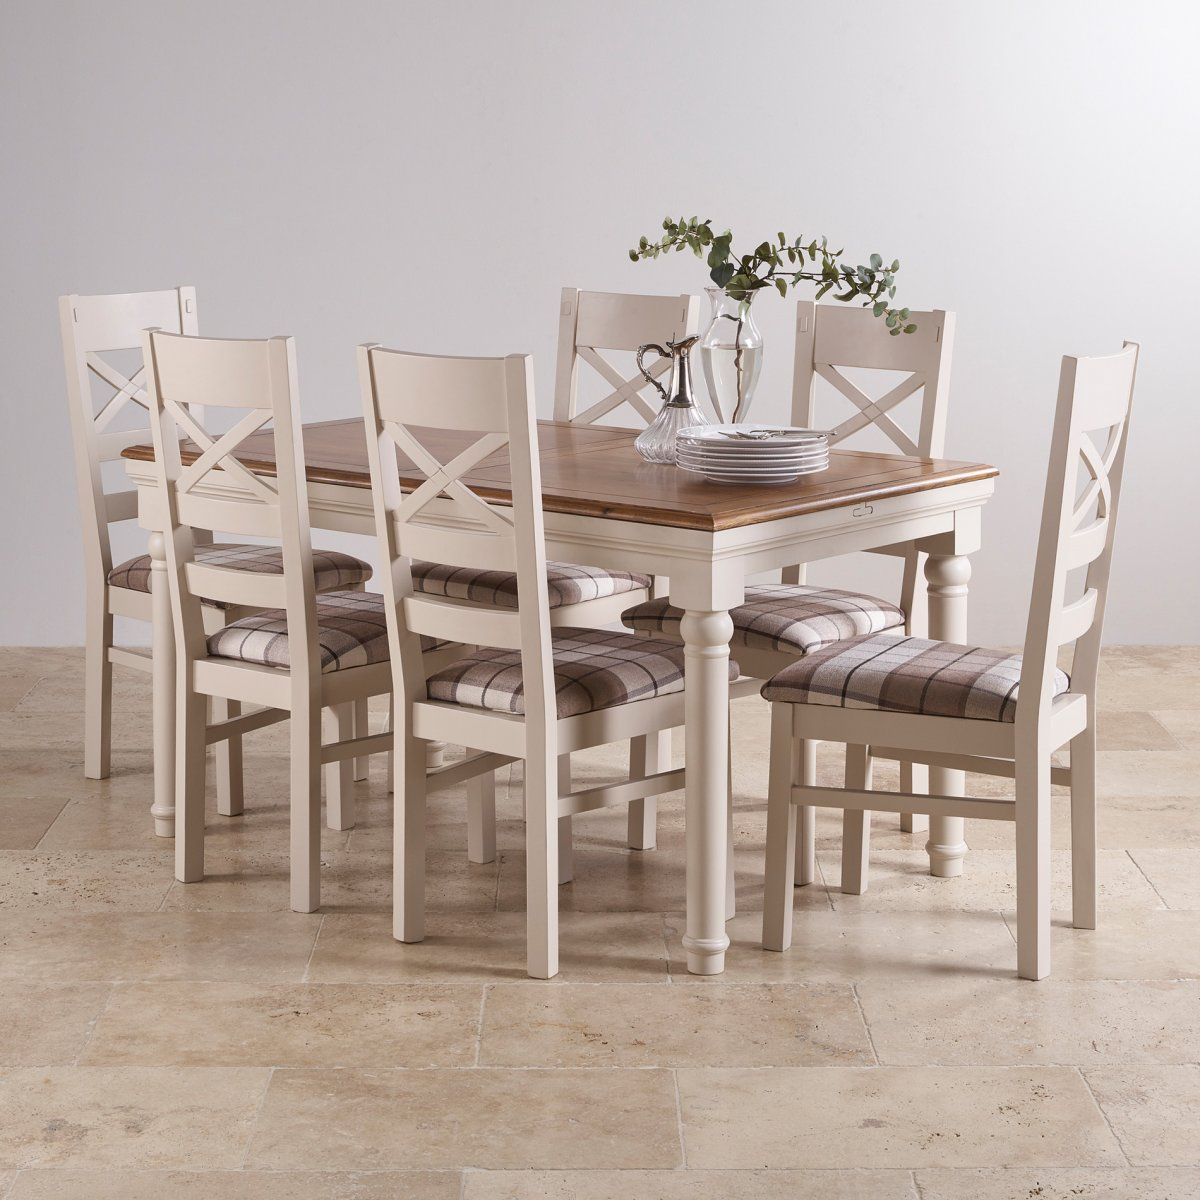 Shay dining table set in painted oak 6 brown check chairs - Extended dining table sets ...